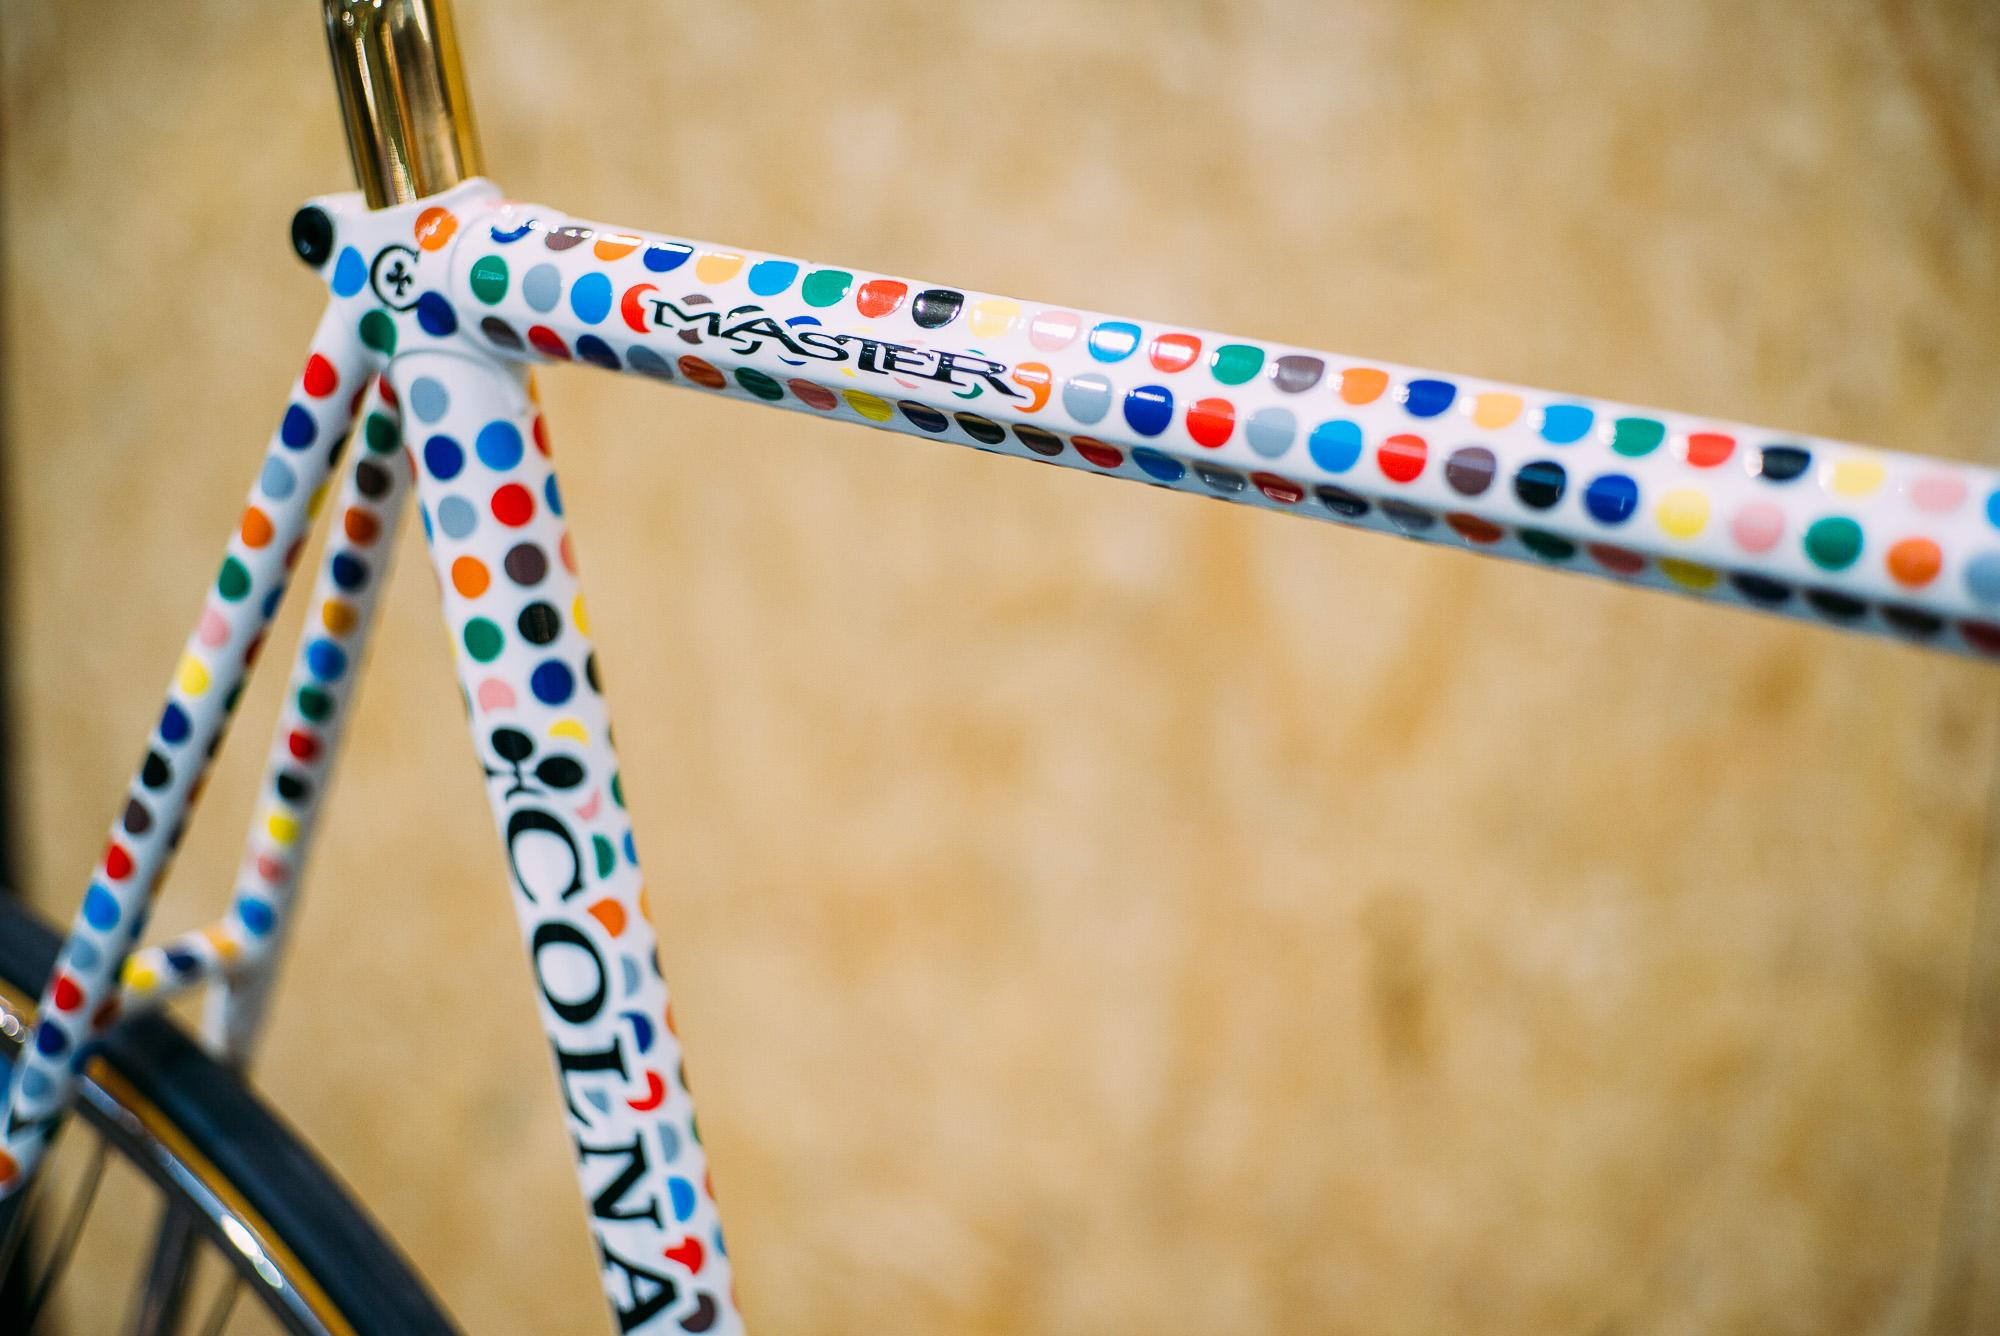 Futura Colnago with gold plated Campagnolo.